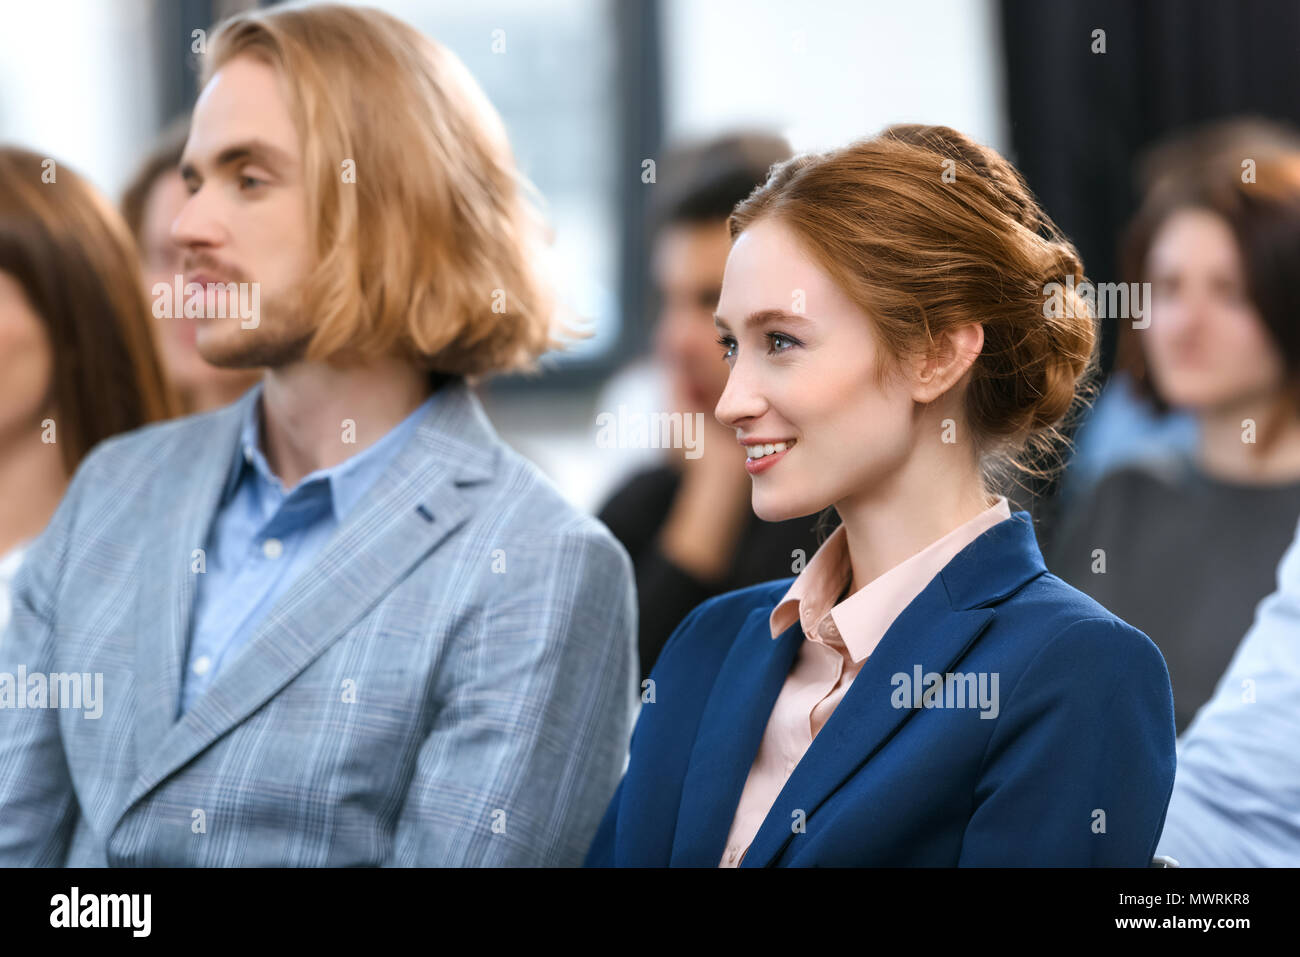 man and woman in formal suits sitting near each other at meeting - Stock Image